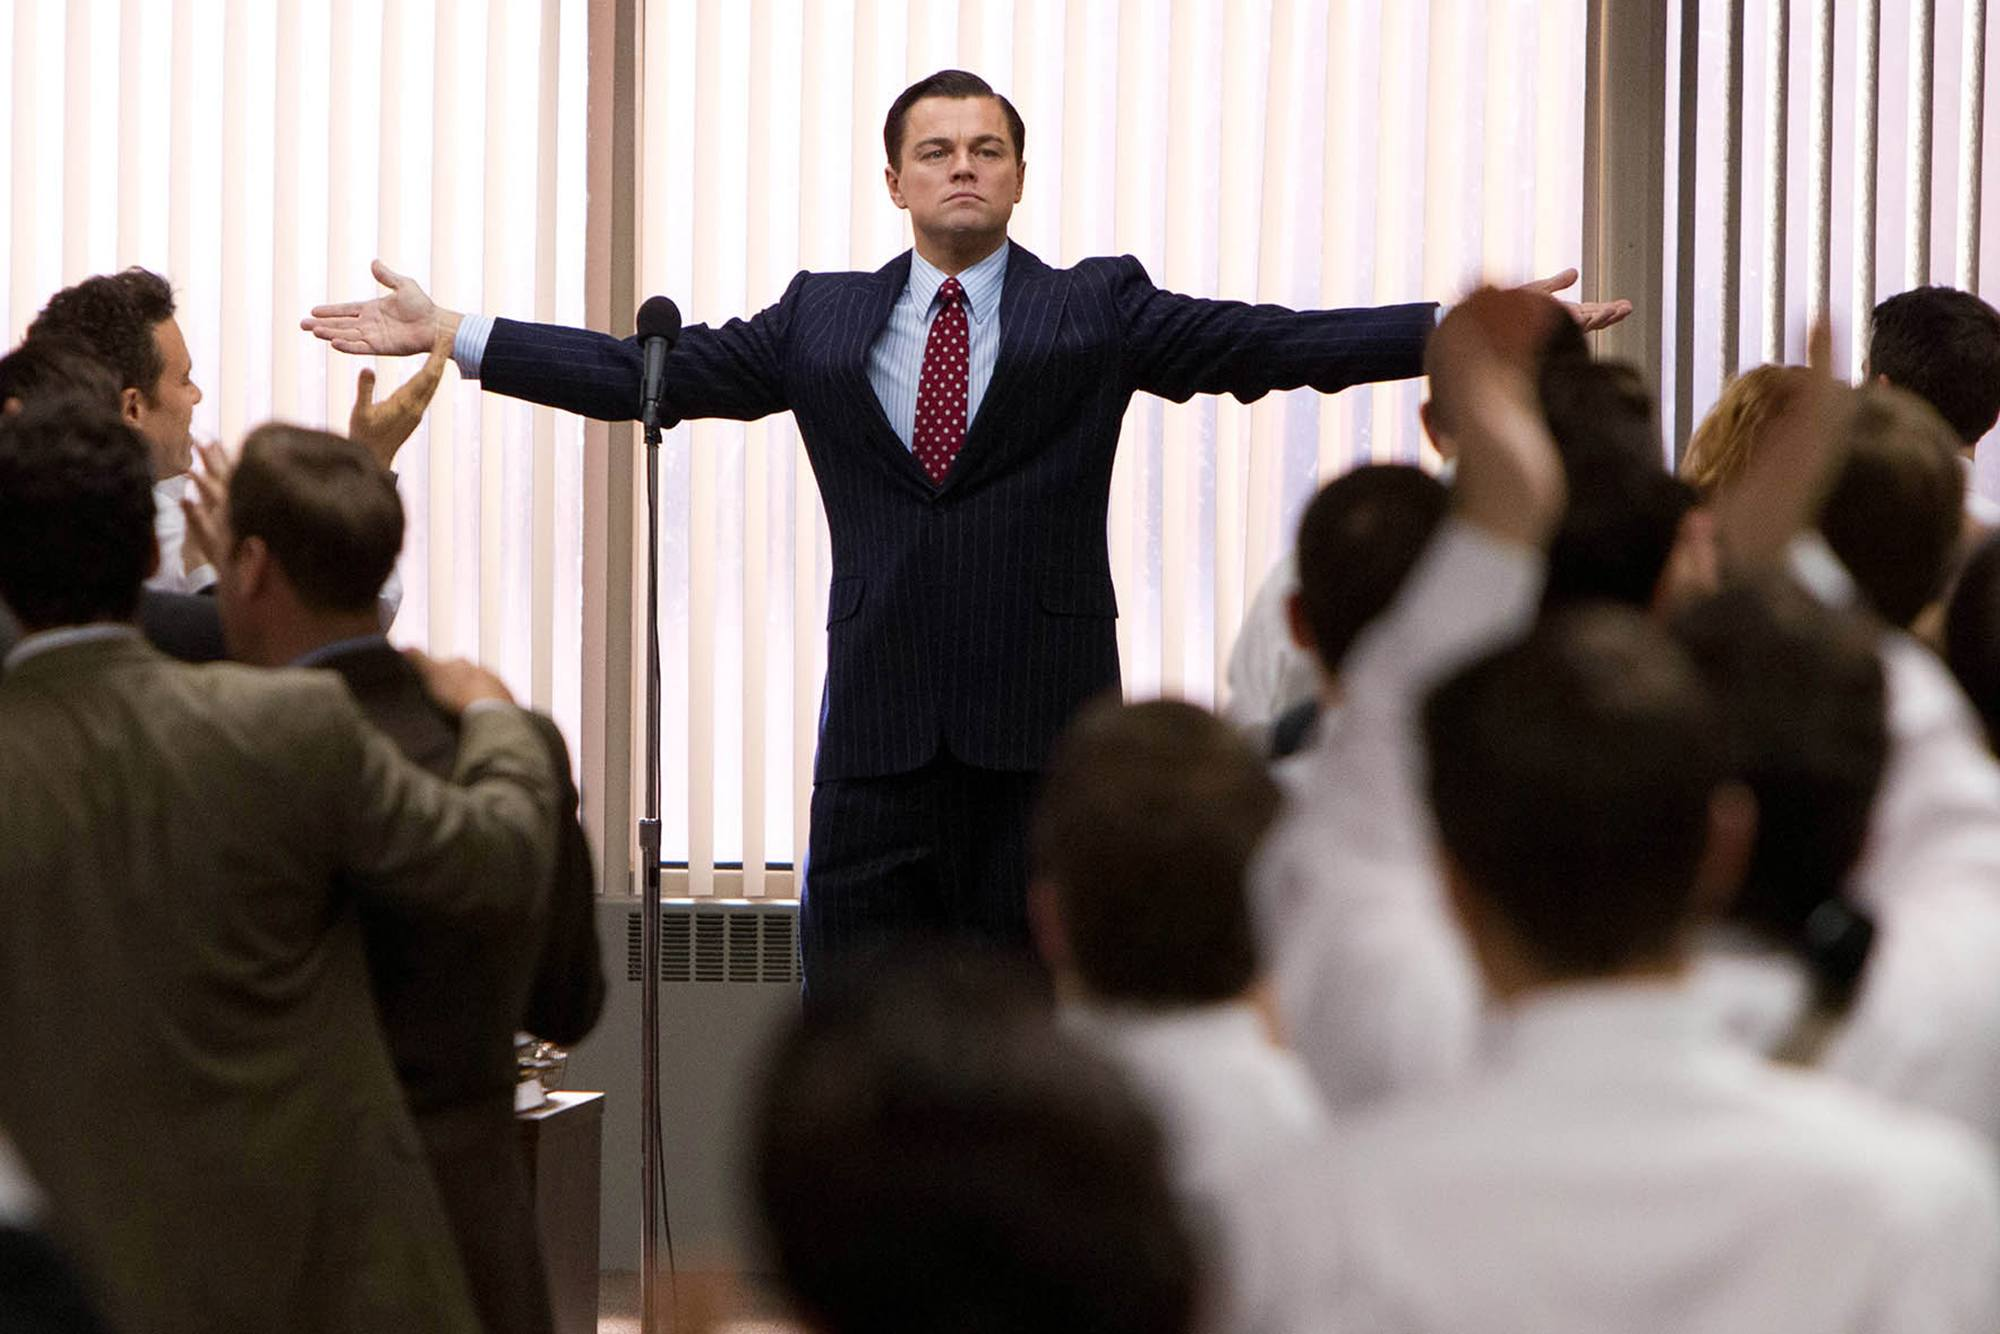 A still from 'The Wolf of Wall Street' shows loyalty and praise to the film's antihero, Jordan Belfort